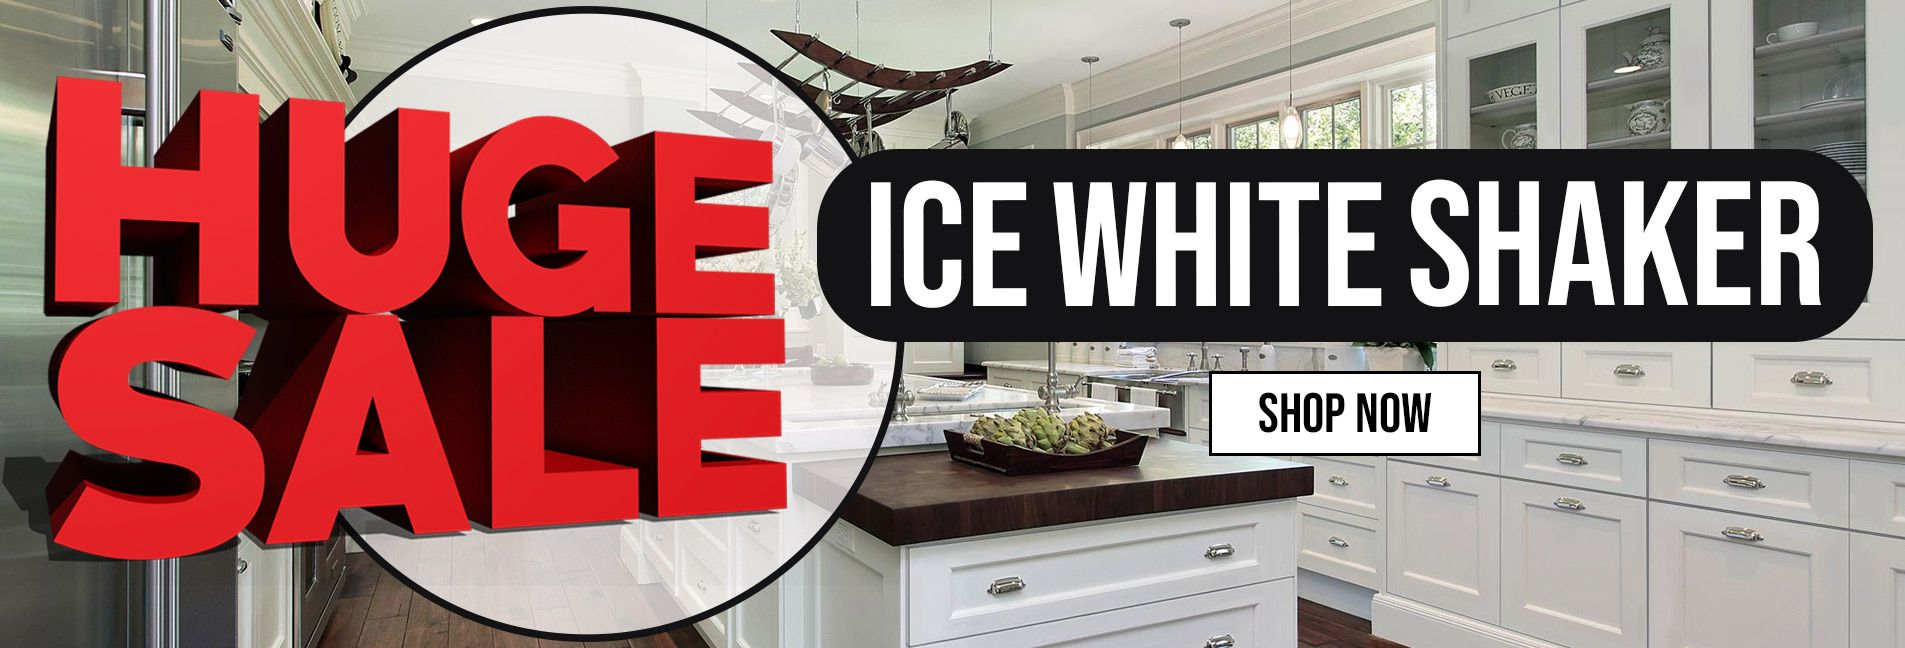 Ice White Shaker Huge Sale